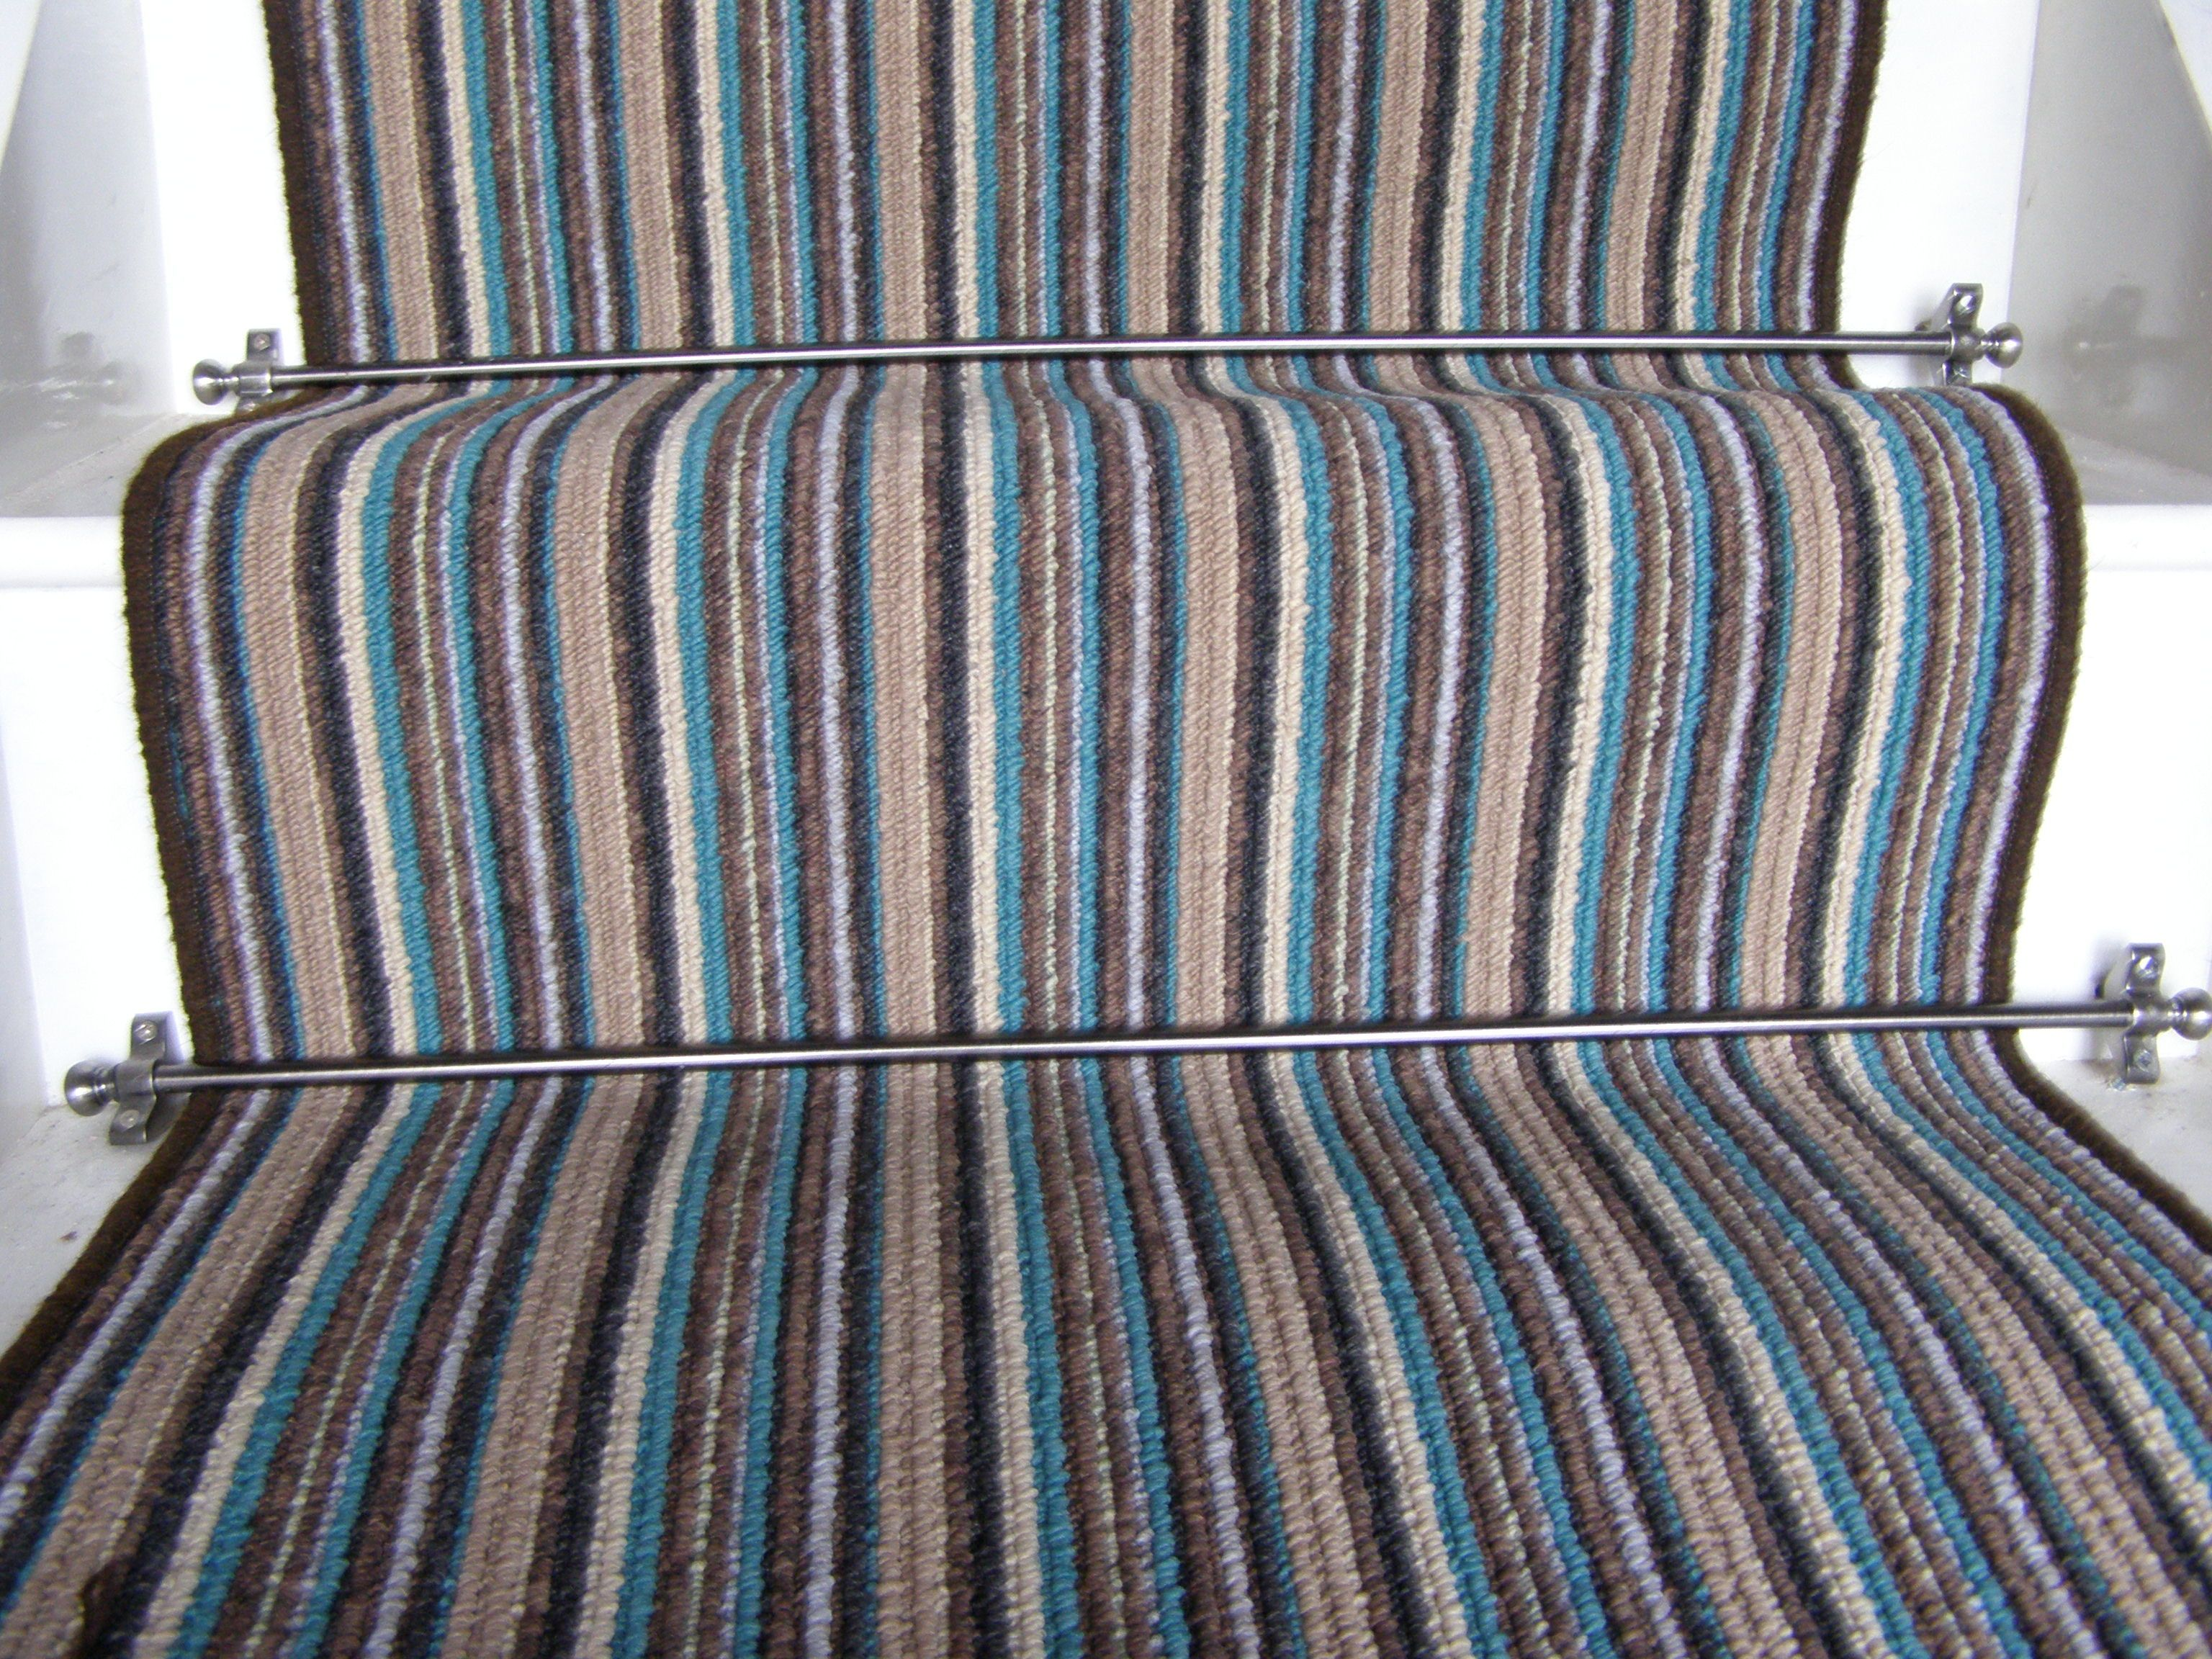 Best Phloor Teal Striped Stair Runner 6 5M X 65M Stair 400 x 300